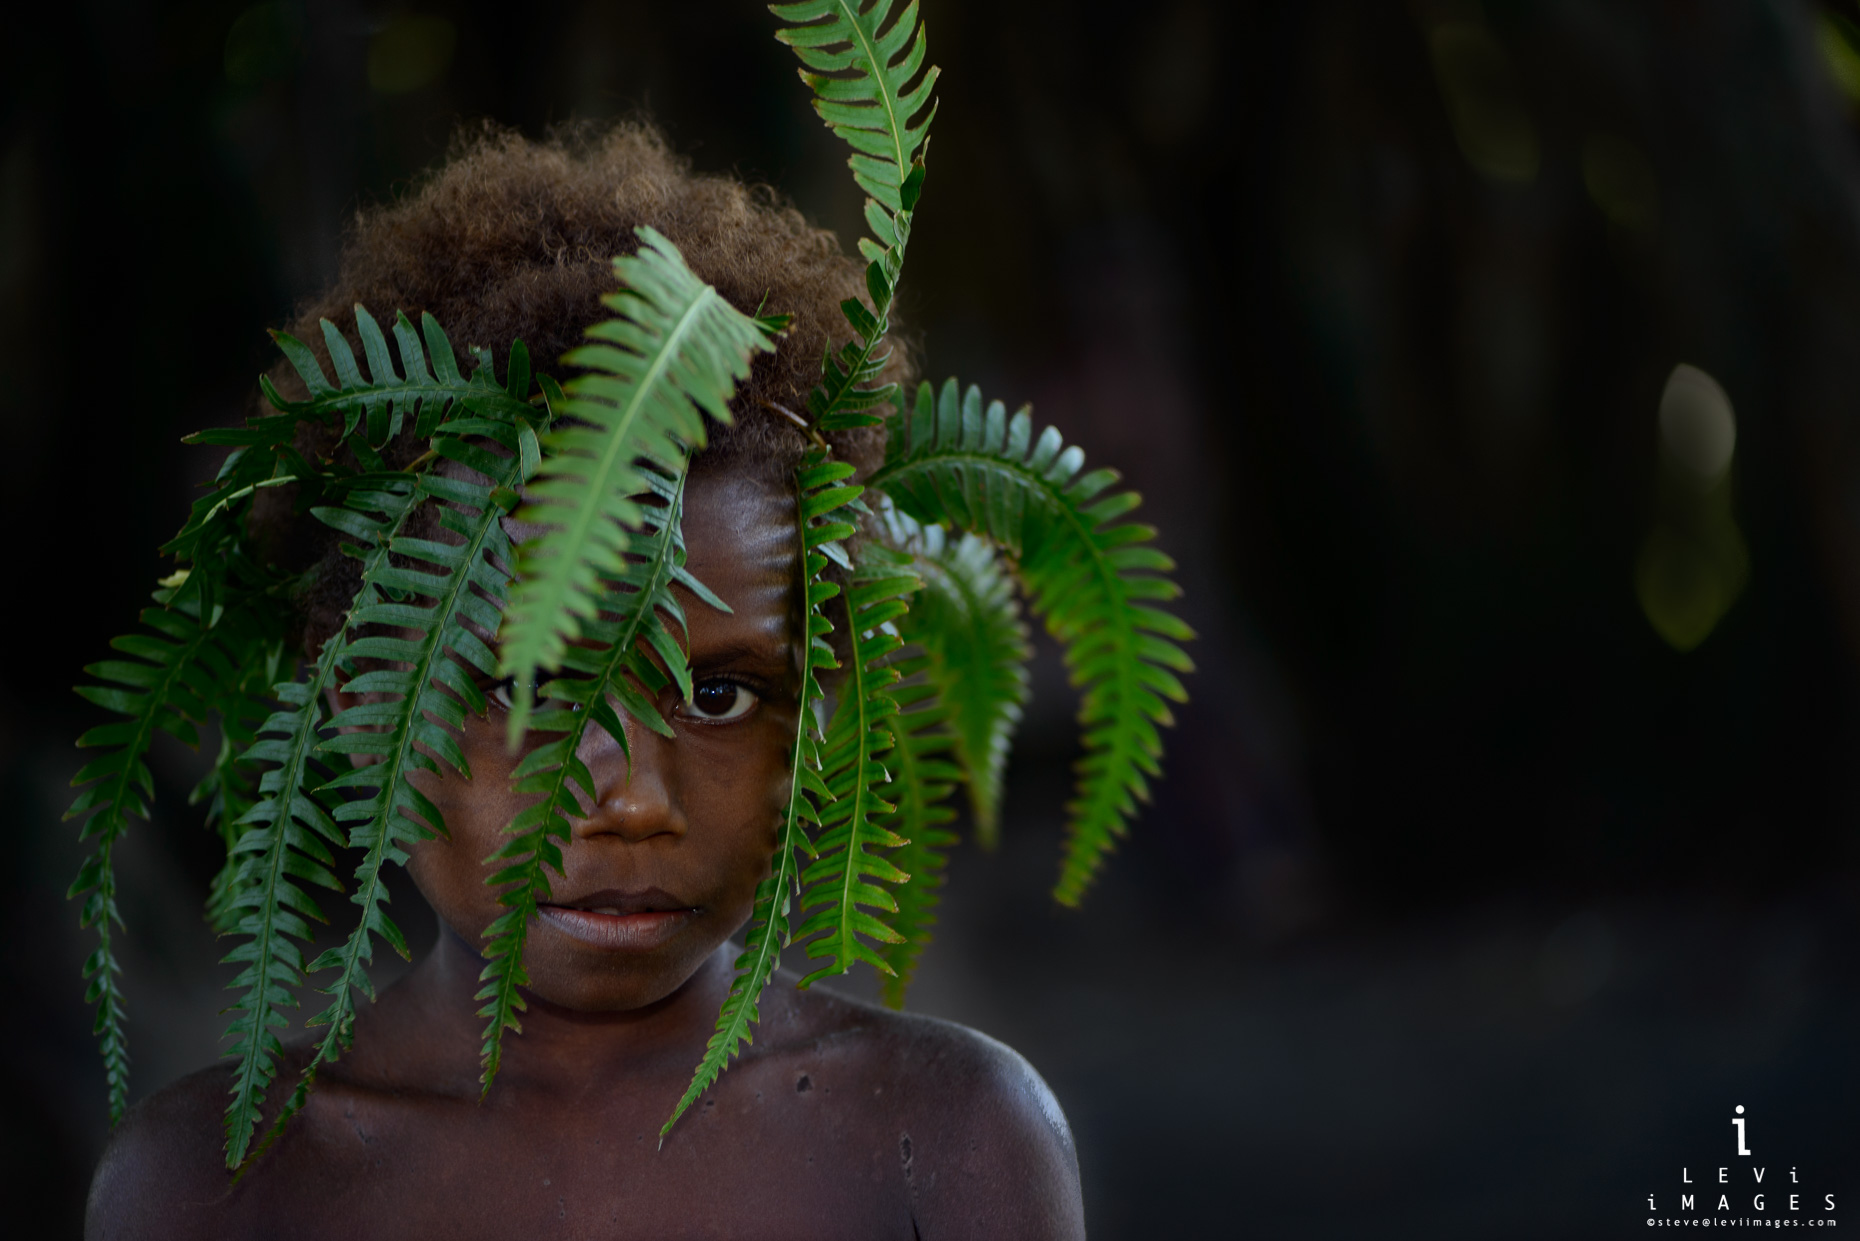 Native girl wears a simple headpiece made from fern frons. Tanna Island.Vanuatu